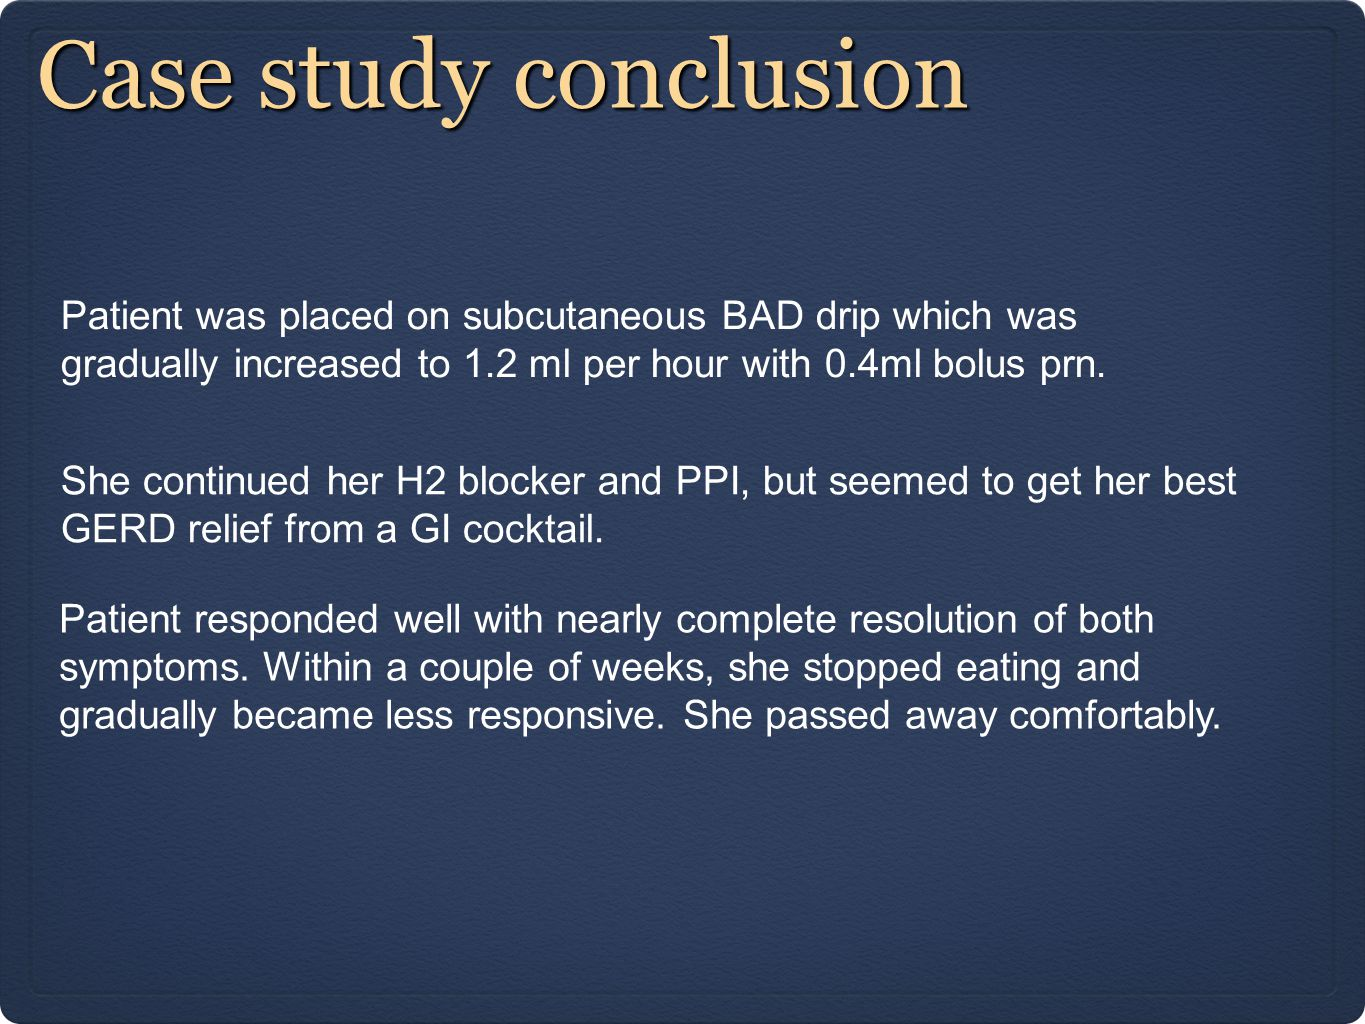 Case study conclusion Patient was placed on subcutaneous BAD drip which was gradually increased to 1.2 ml per hour with 0.4ml bolus prn.